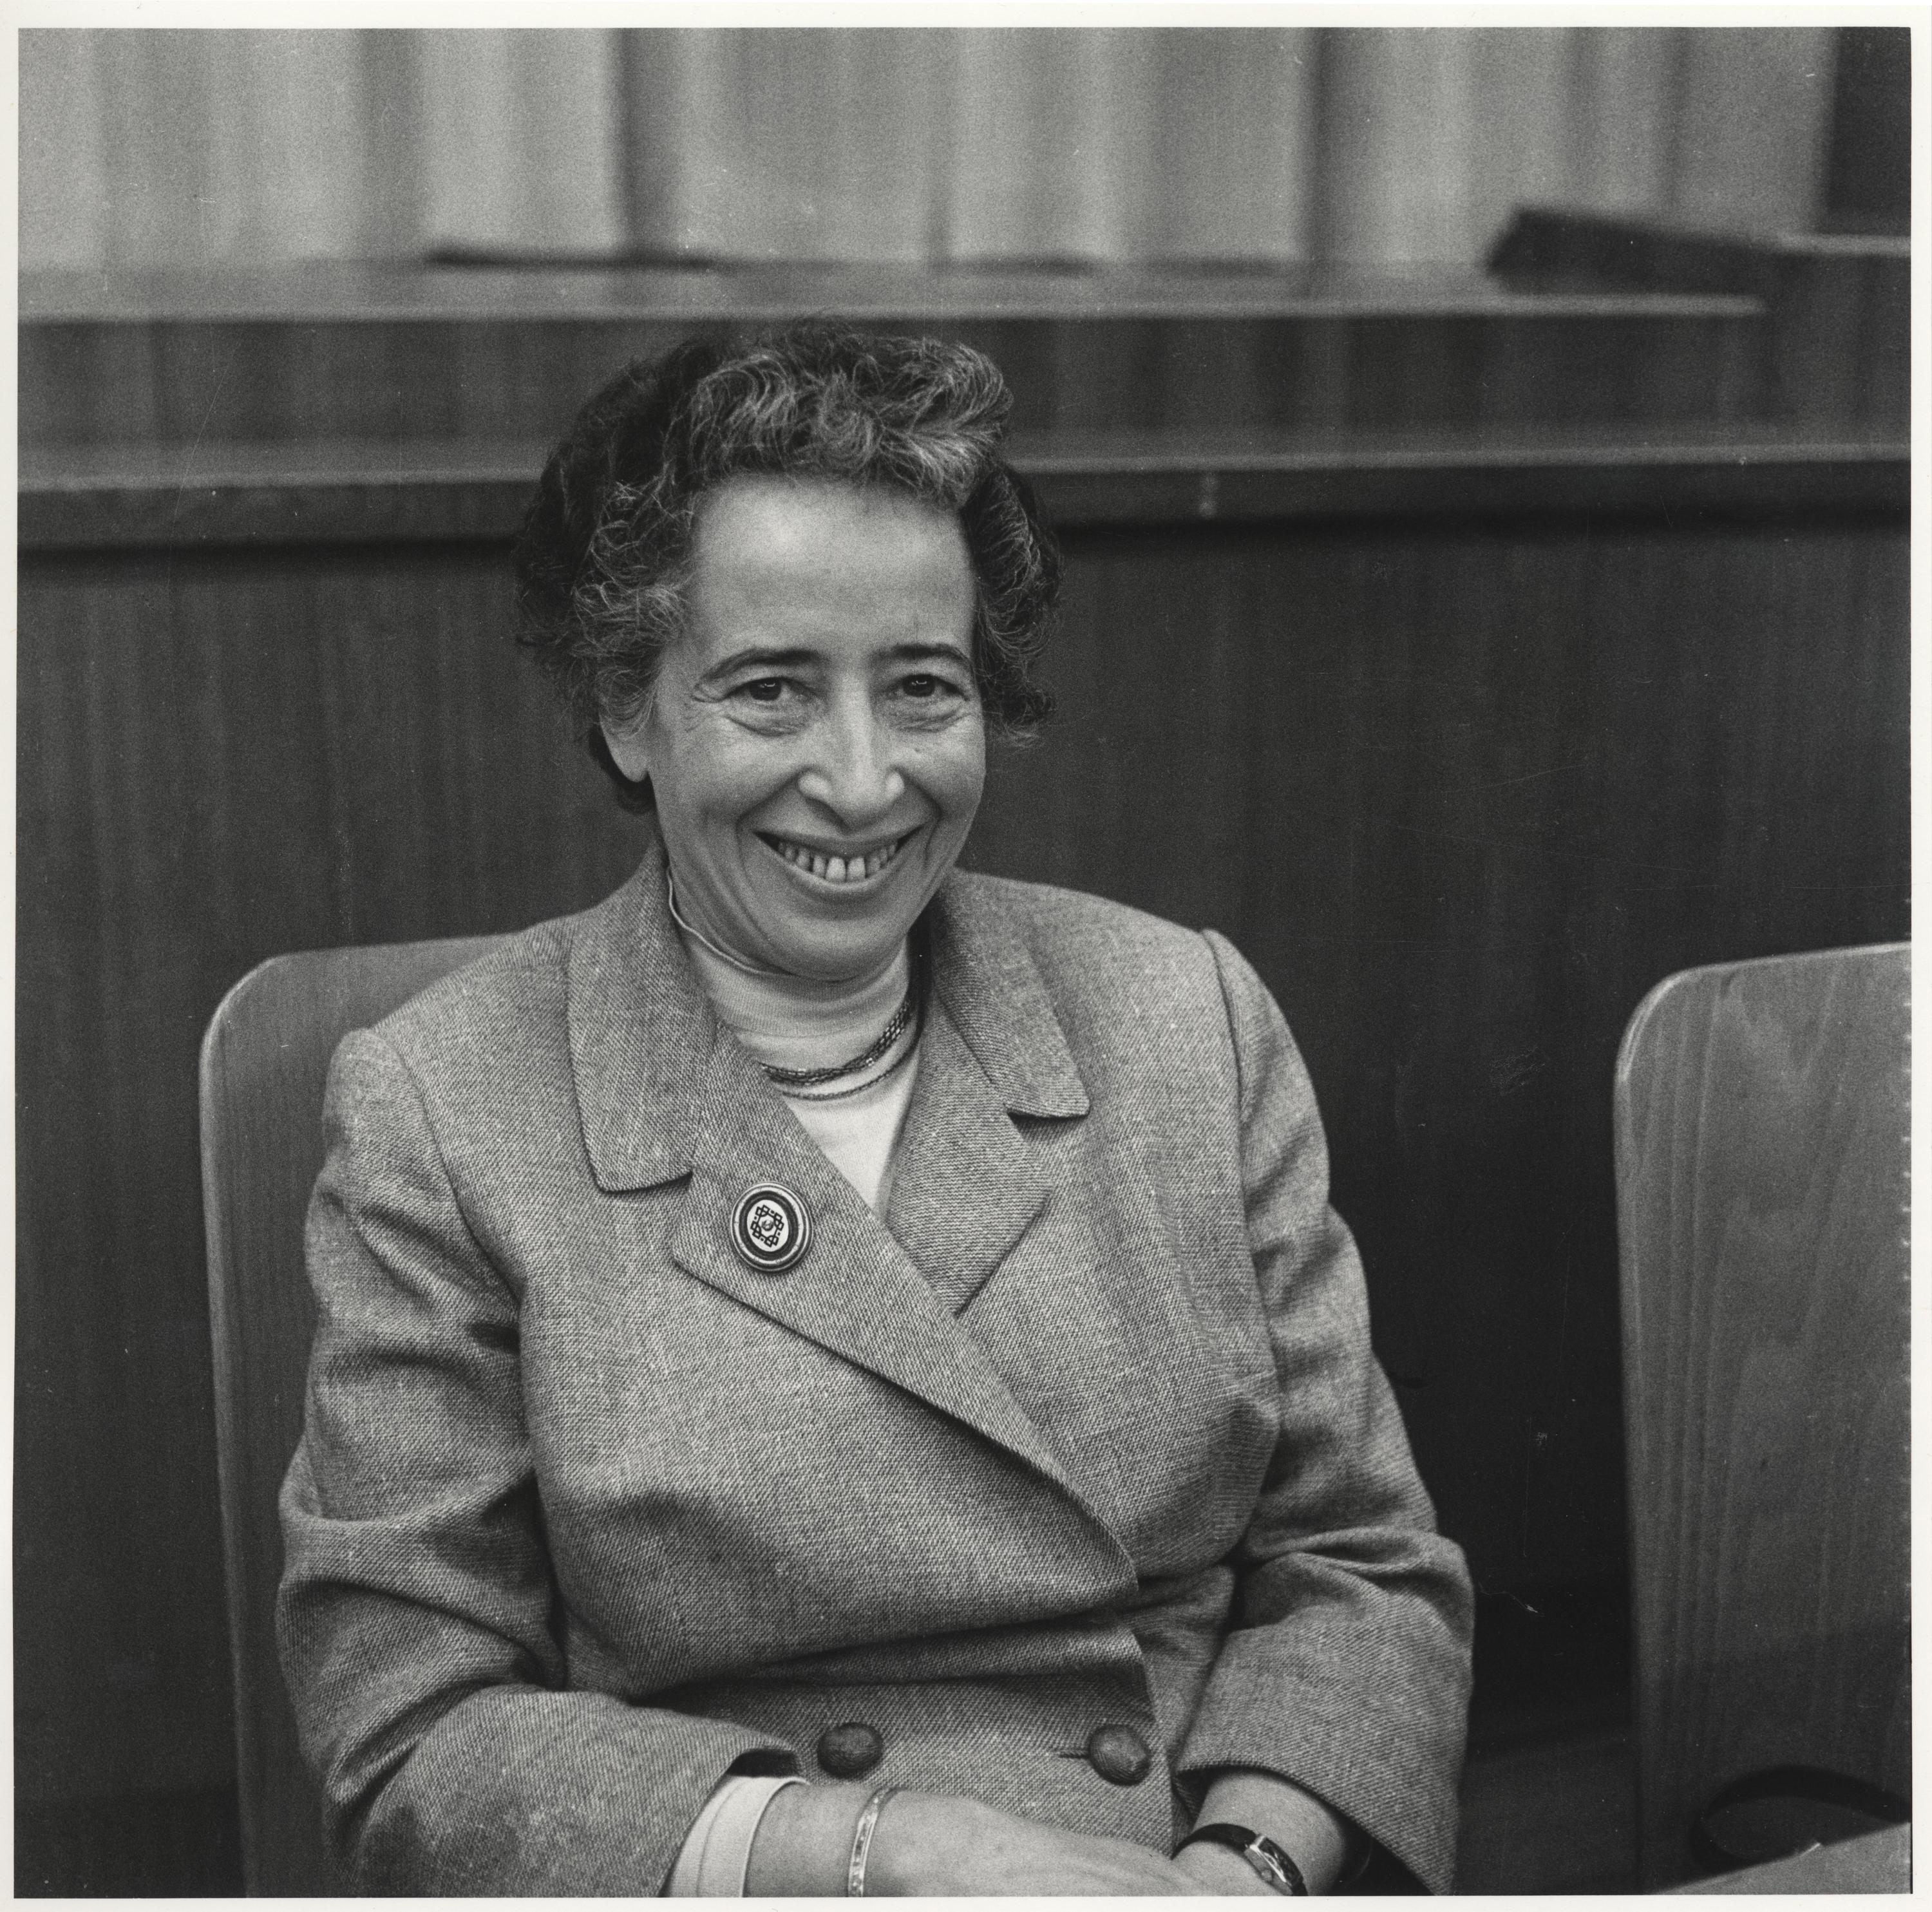 Hannah Arendt 1958 taken from Deutsches Historisches Museum, Berlin